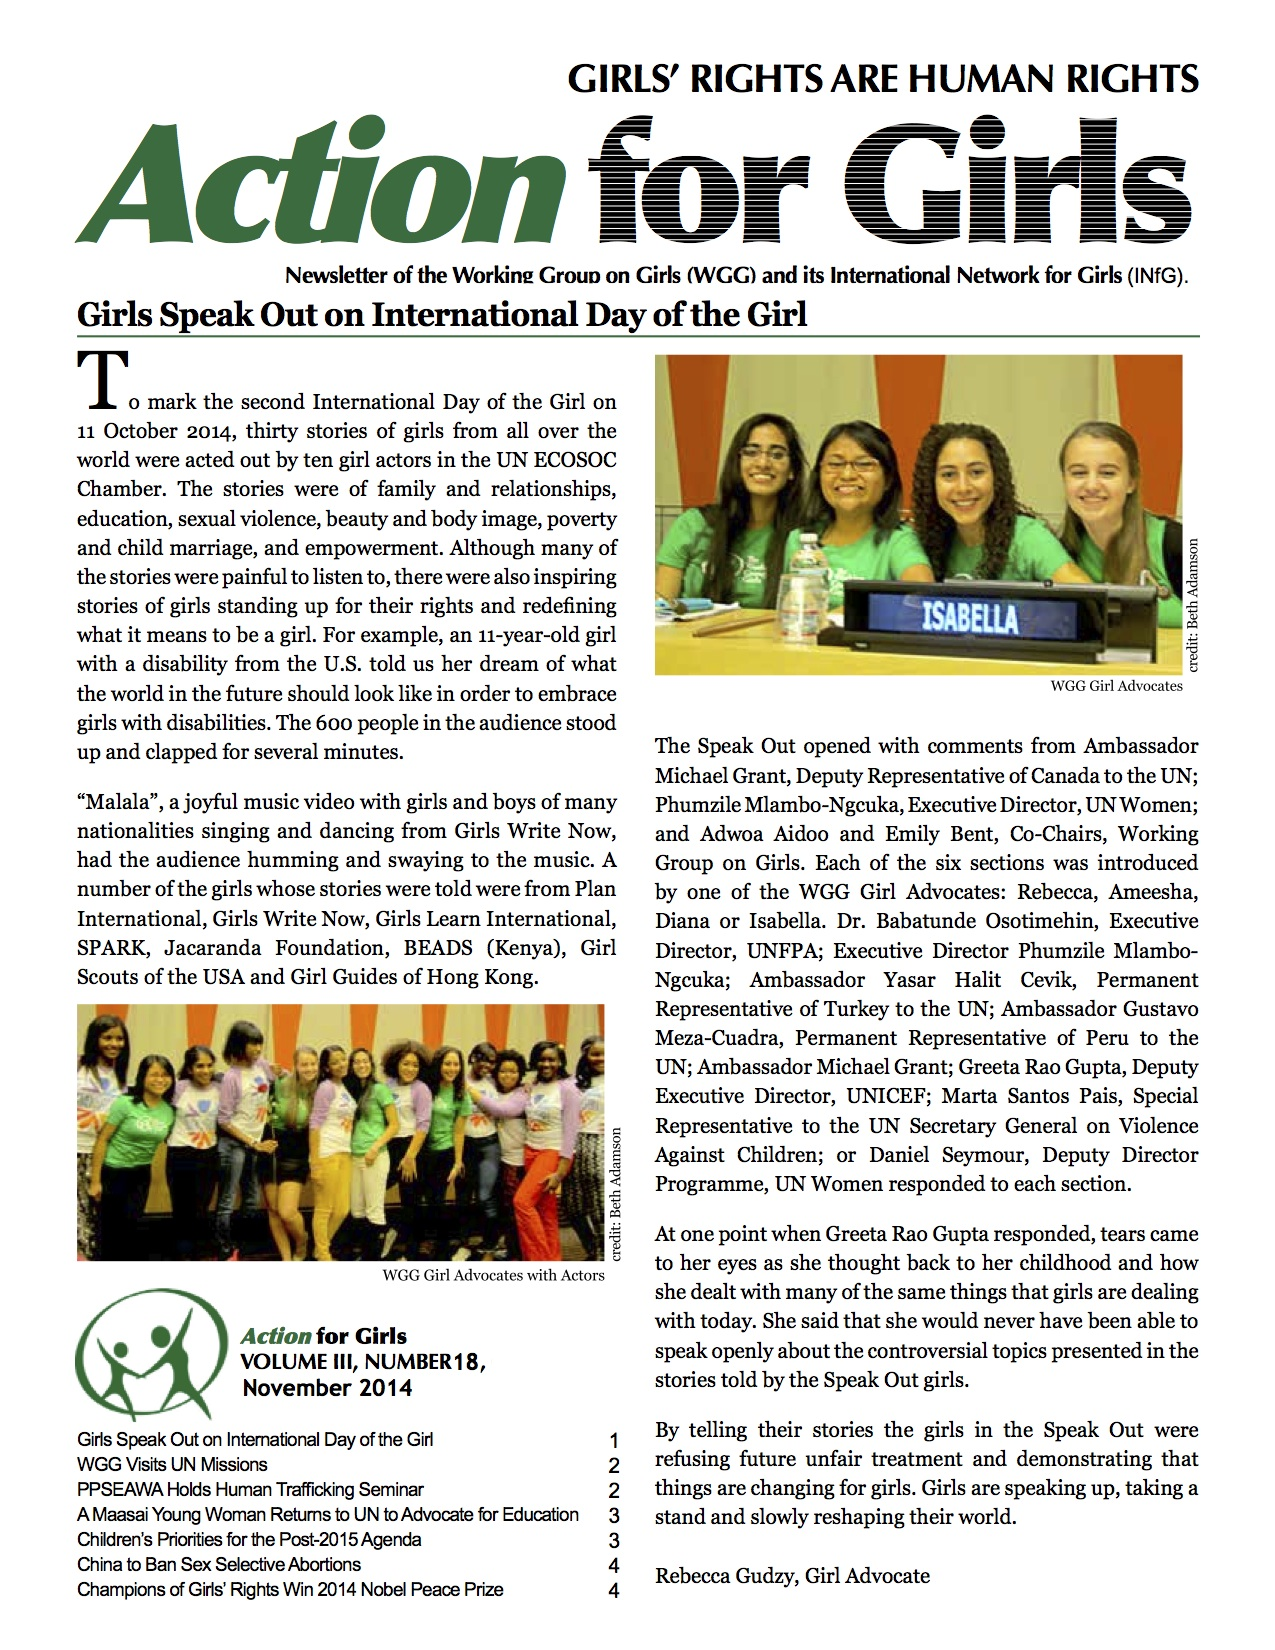 Read the Latest Action for Girls!